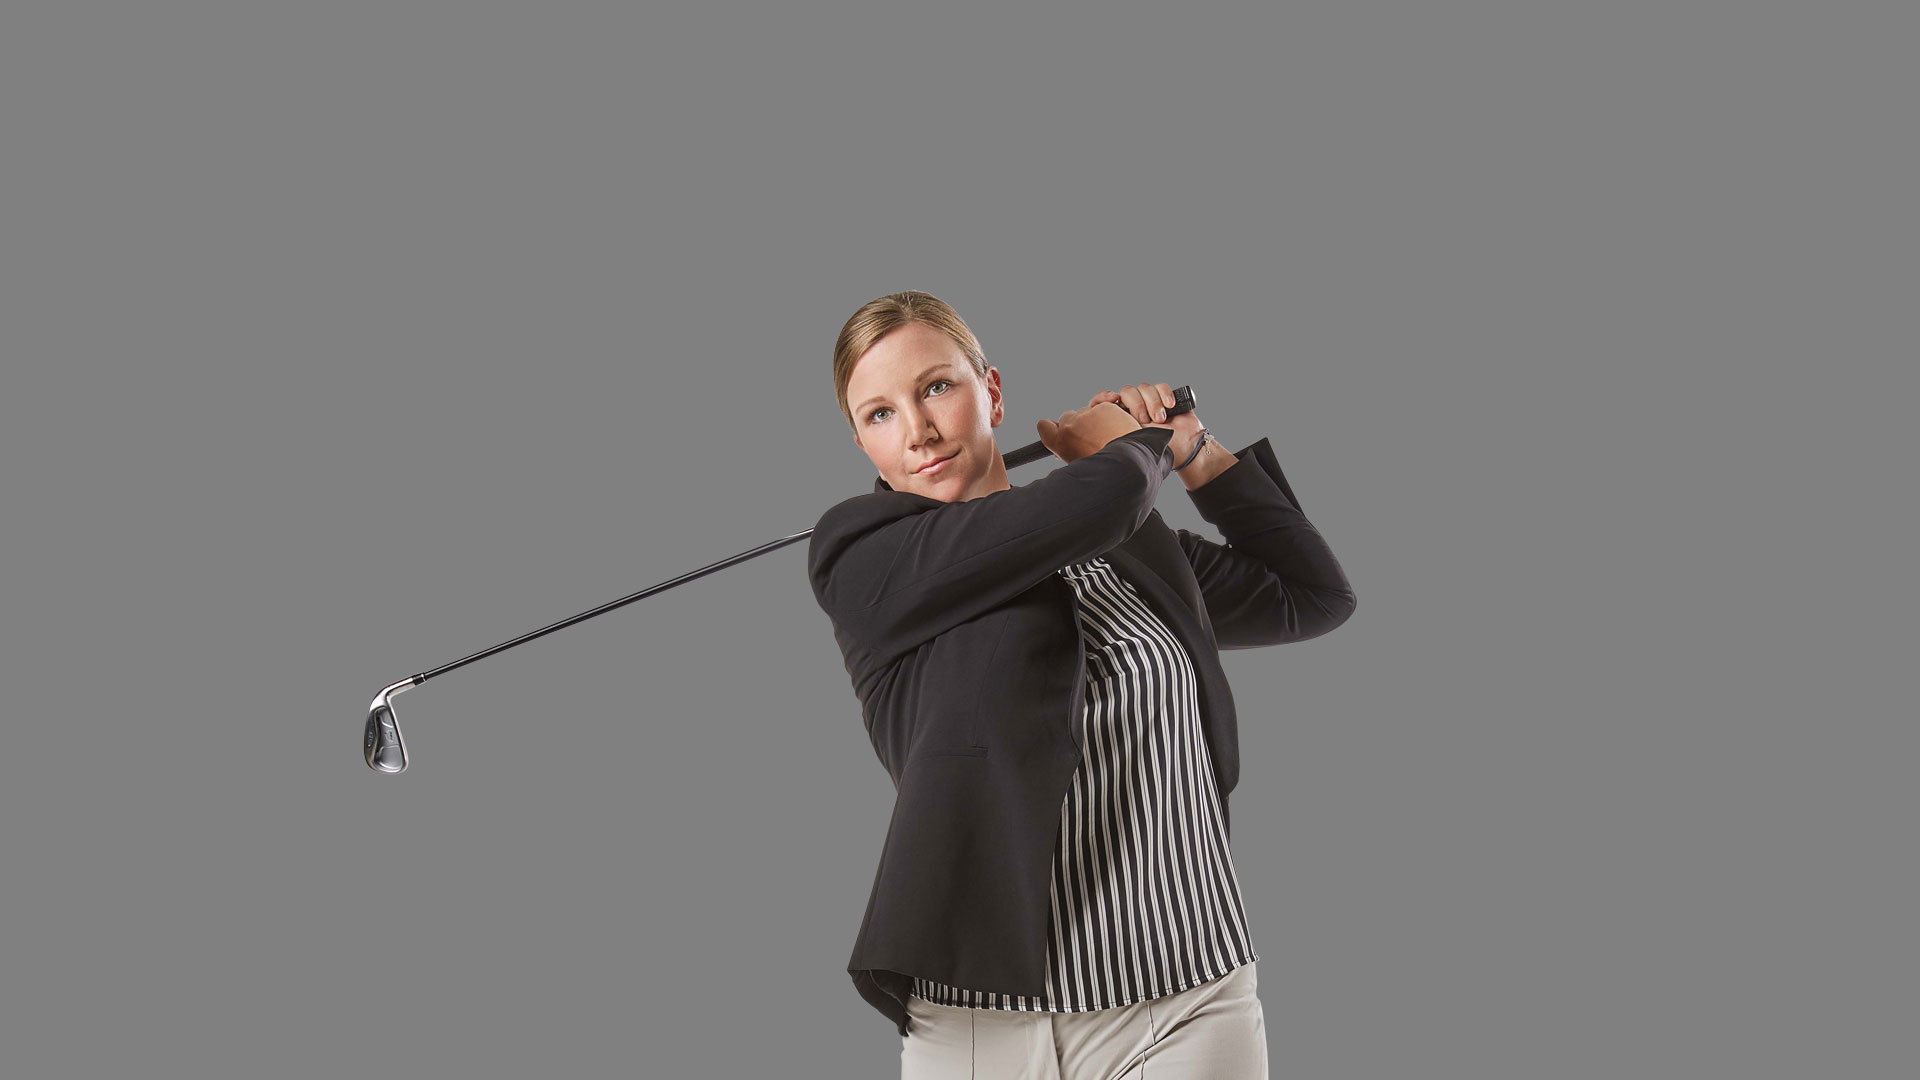 Employee Christiane swinging a golf club